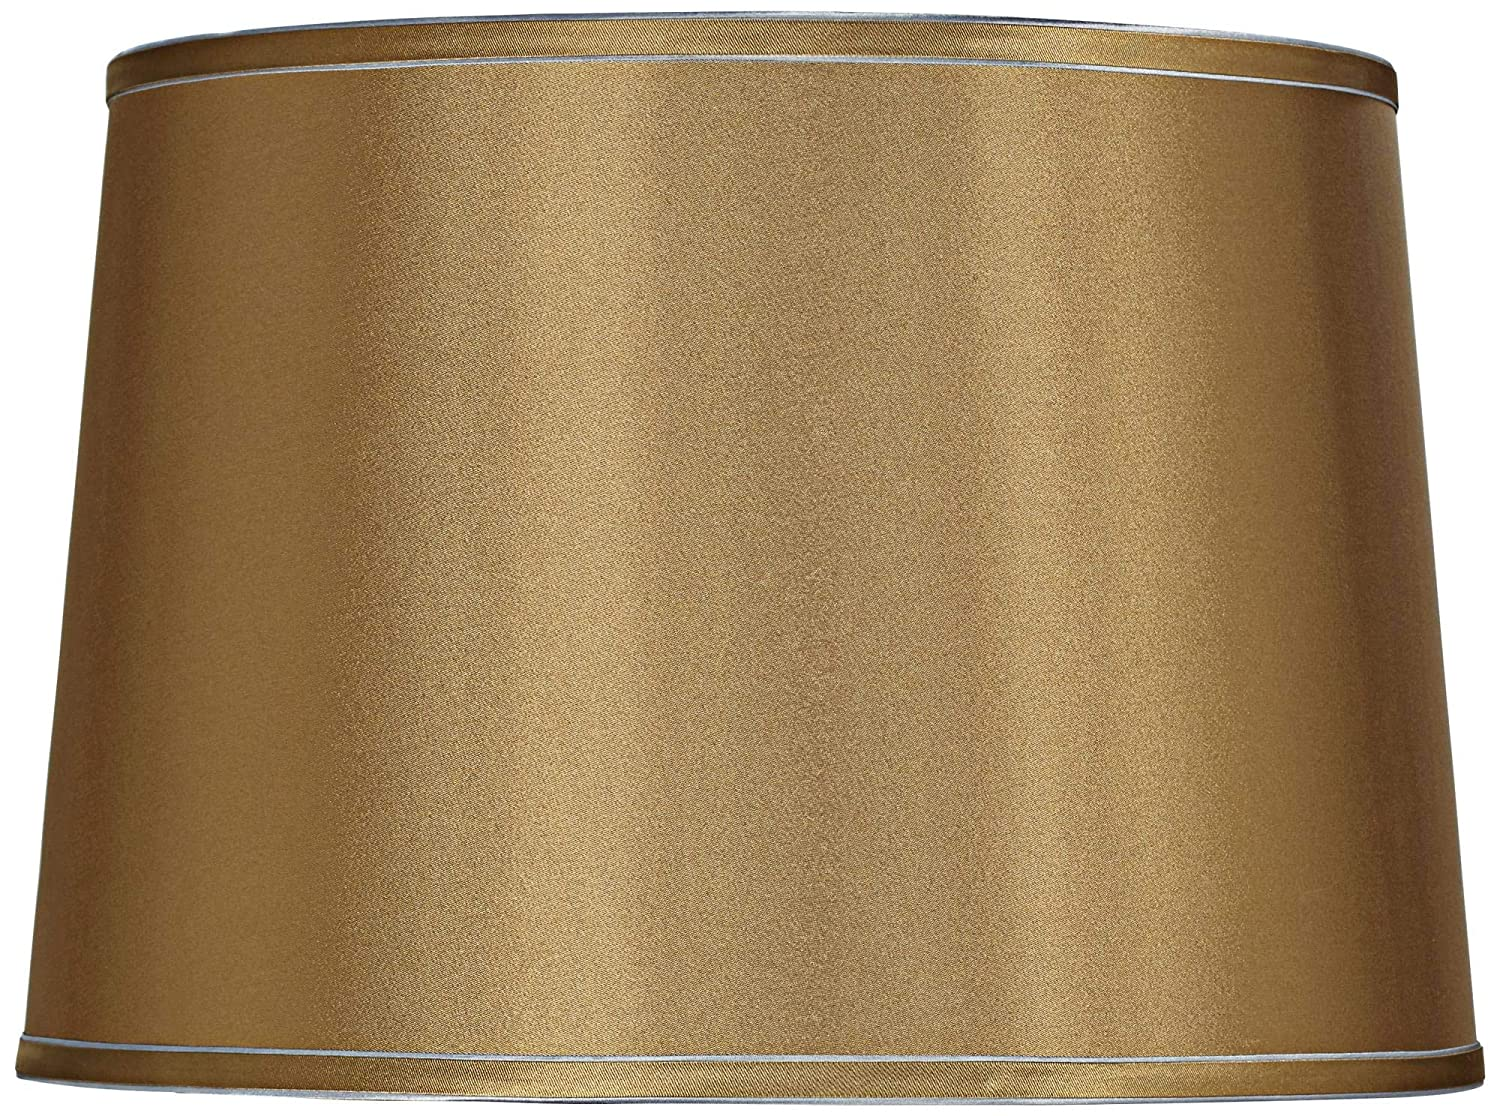 Sydnee Gold with Silver Trim Drum Shade 14x16x11 (Spider)